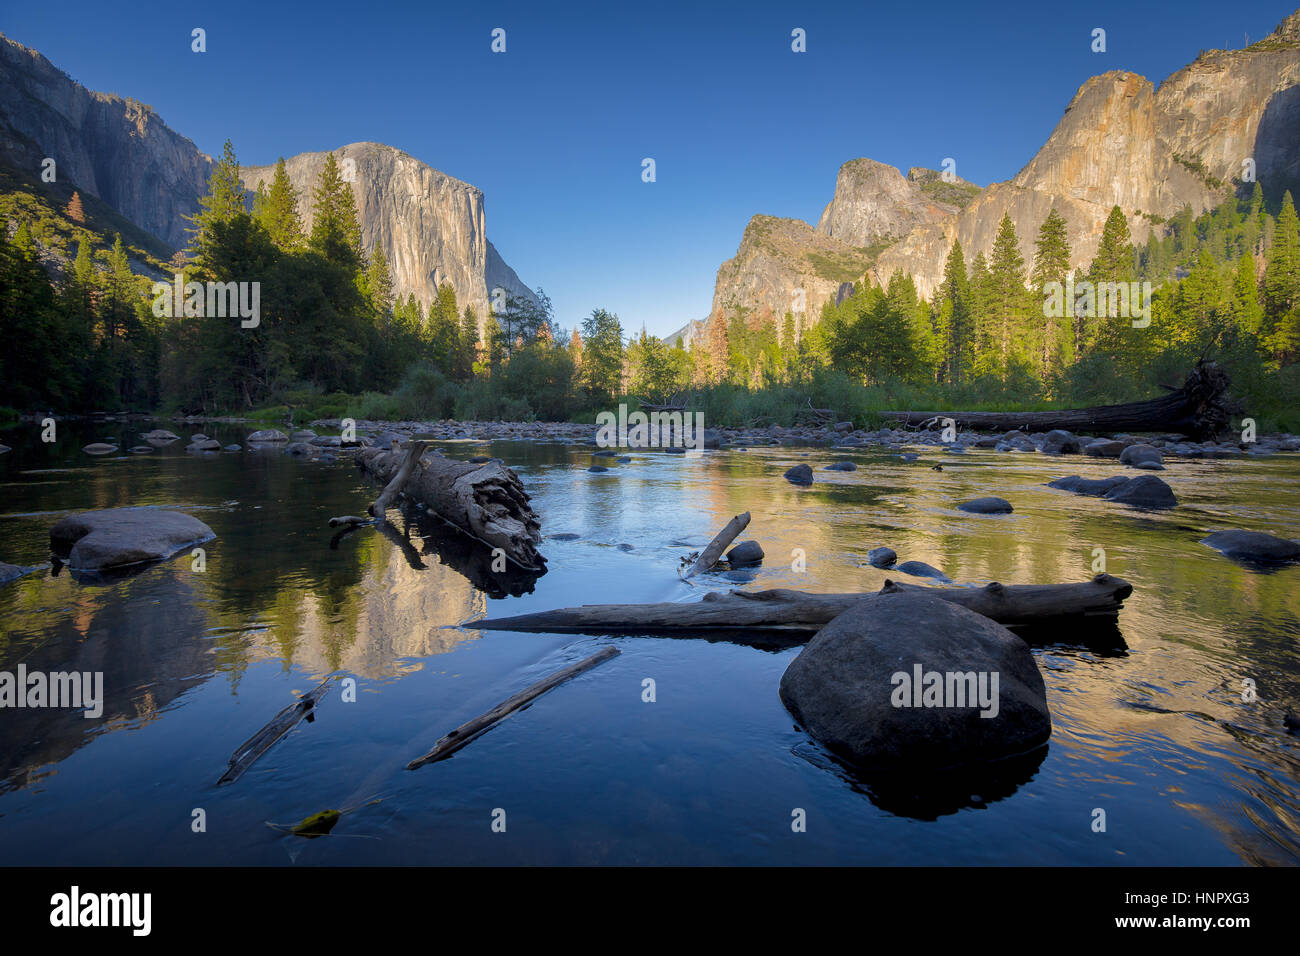 Classic view of scenic Yosemite Valley with famous El Capitan rock climbing summit and idyllic Merced river in beautiful - Stock Image